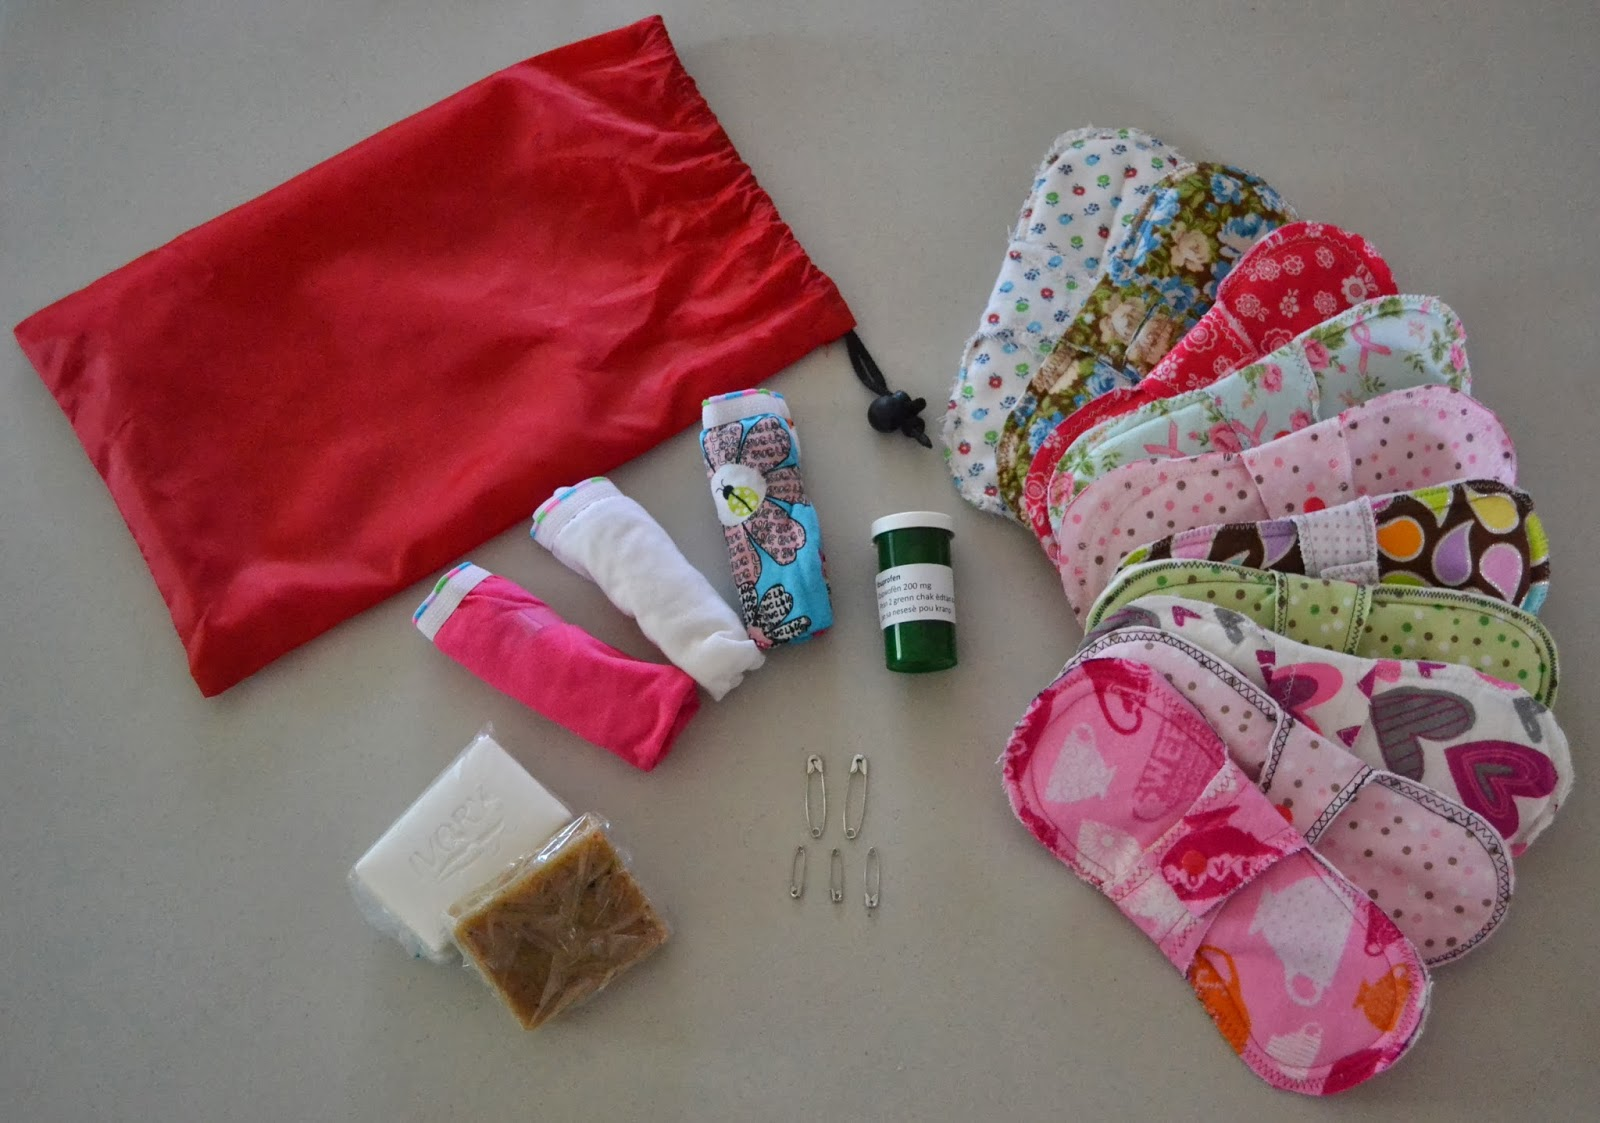 How To Make Cotton Sanitary Pads At Home